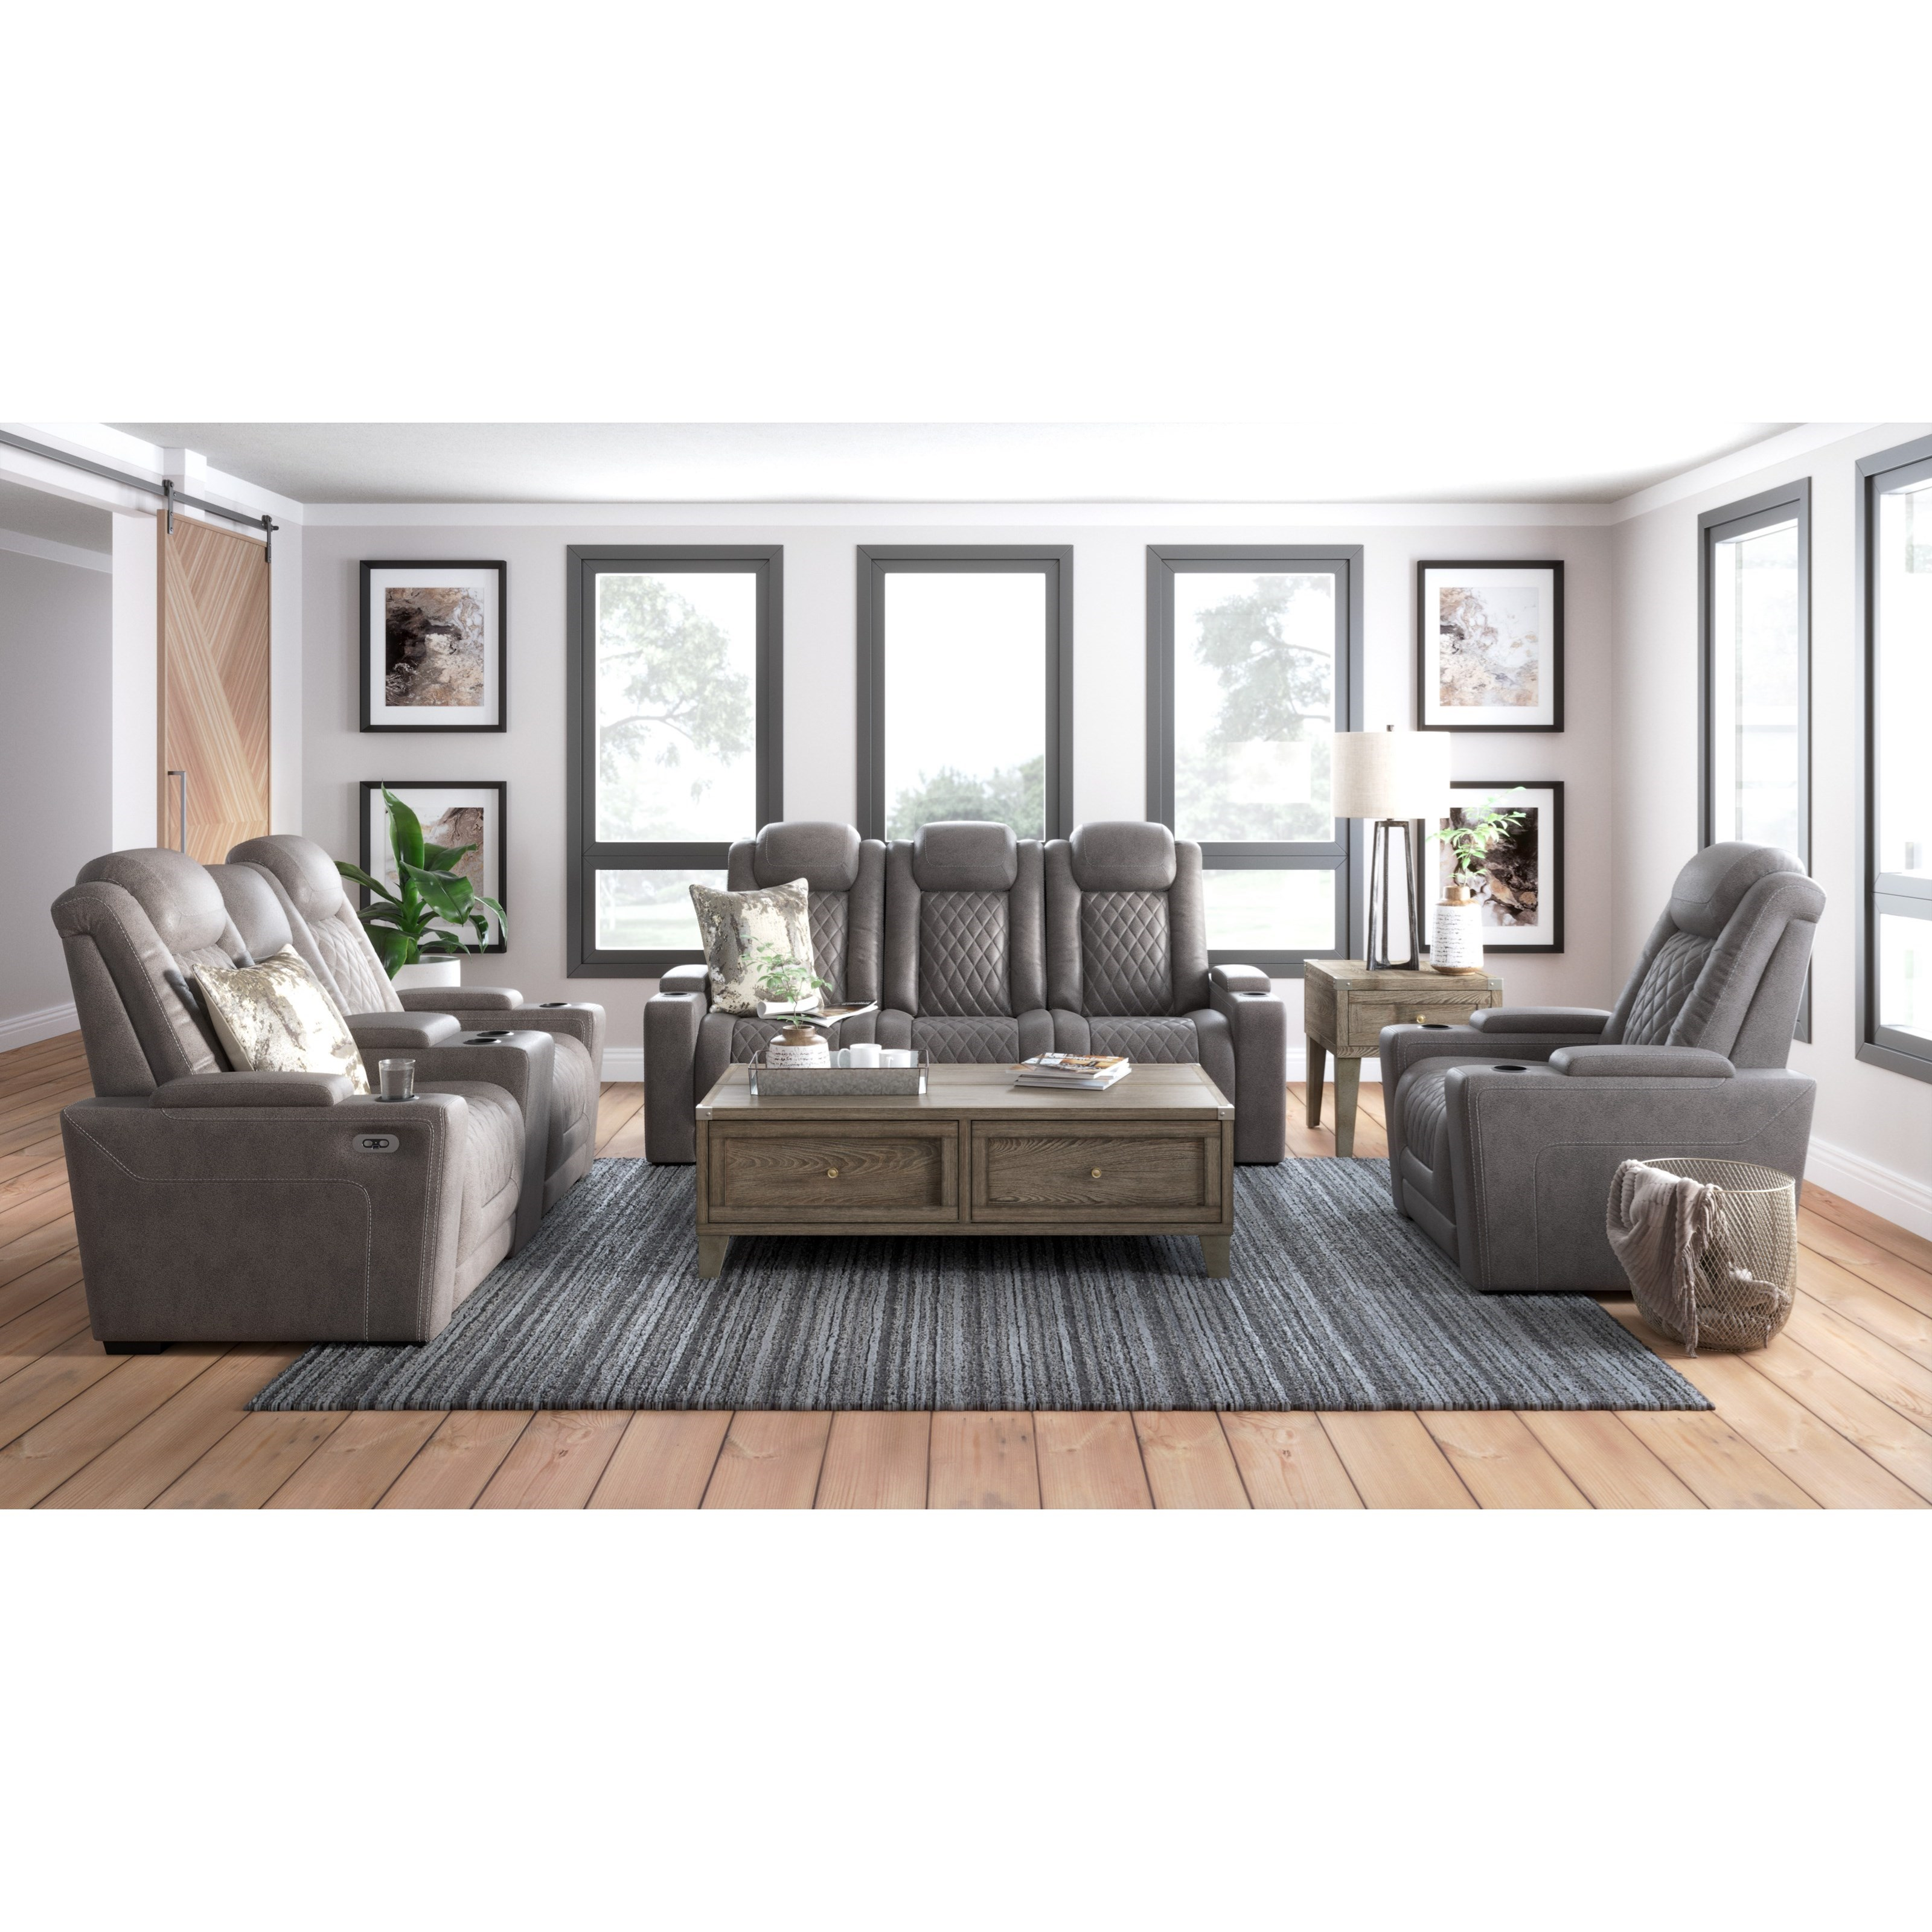 Hyllmont Power Reclining Living Room Group by Ashley (Signature Design) at Johnny Janosik